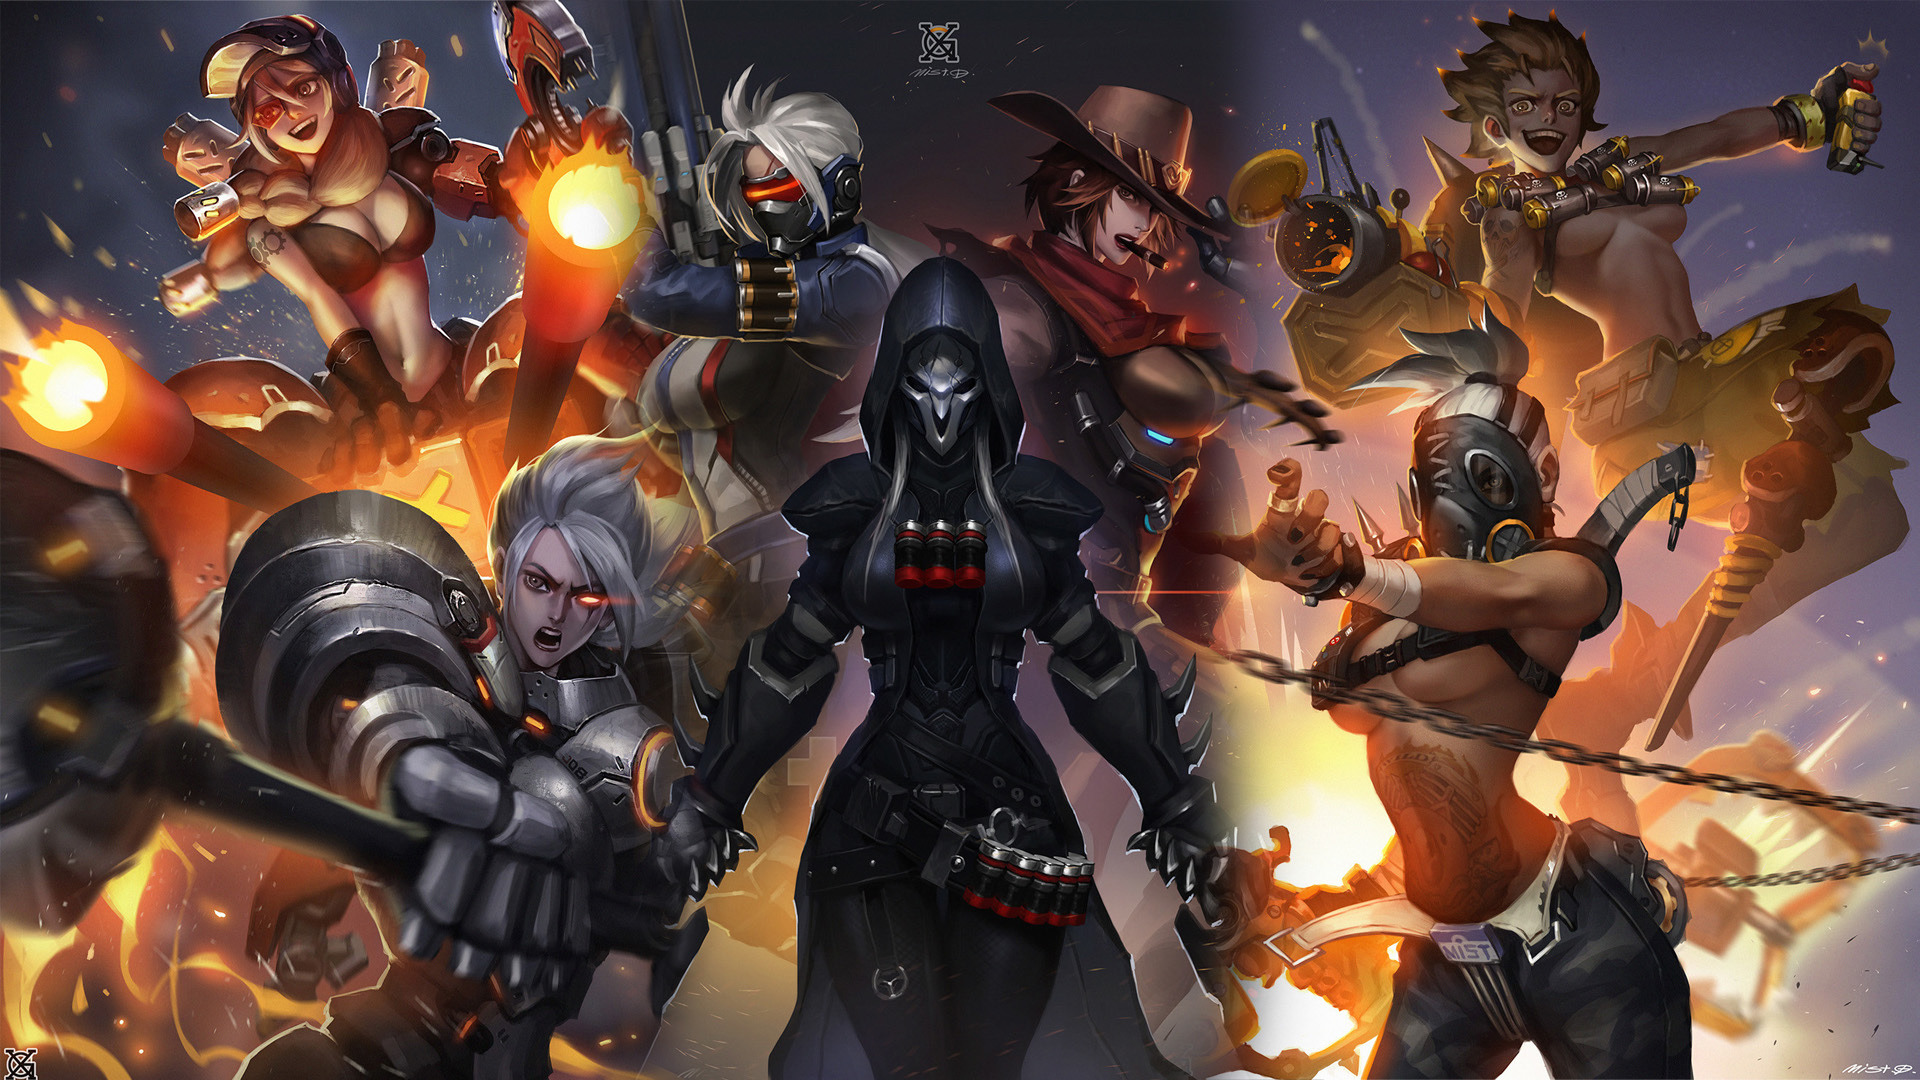 Anime Girl Android Wallpaper Download 1920x1080 Wallpaper Overwatch Girl Warriors All